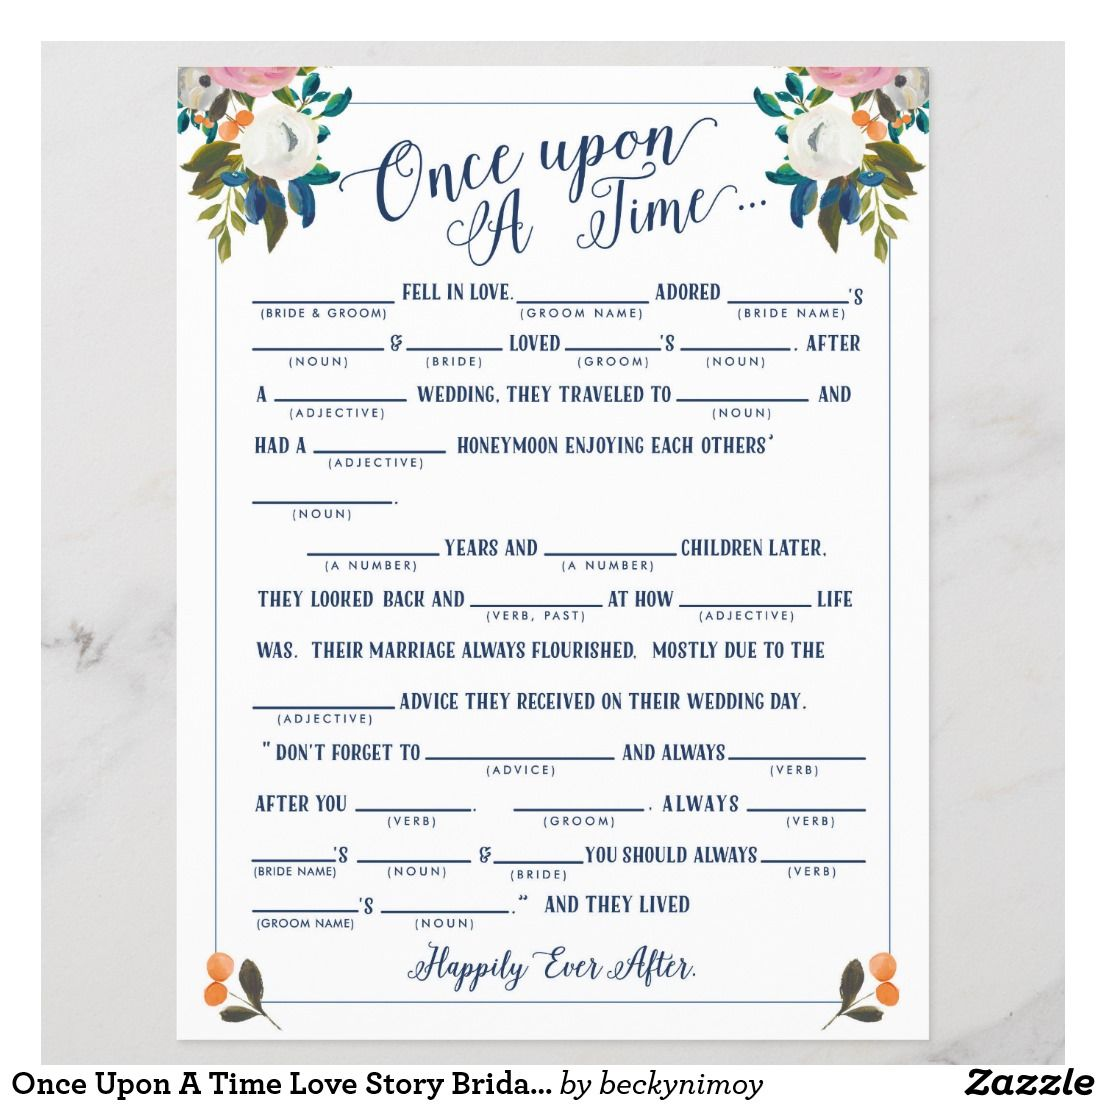 Once Upon A Time Love Story Bridal Libs Game Zazzle Com Fun Bridal Shower Games Bride Shower Games Bridal Shower Games